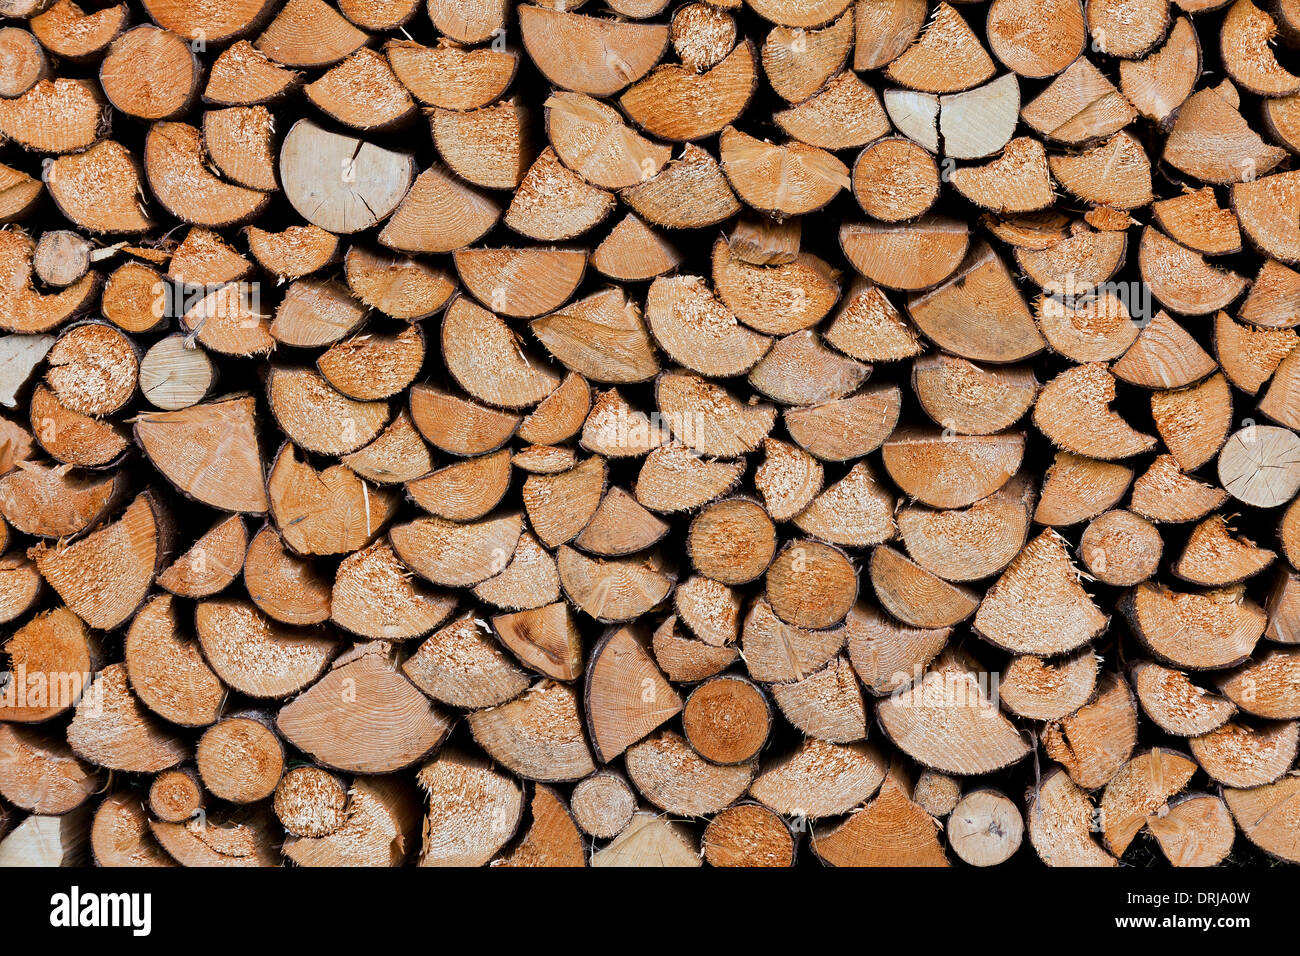 Stack of split firewood used as wood fuel - Stock Image